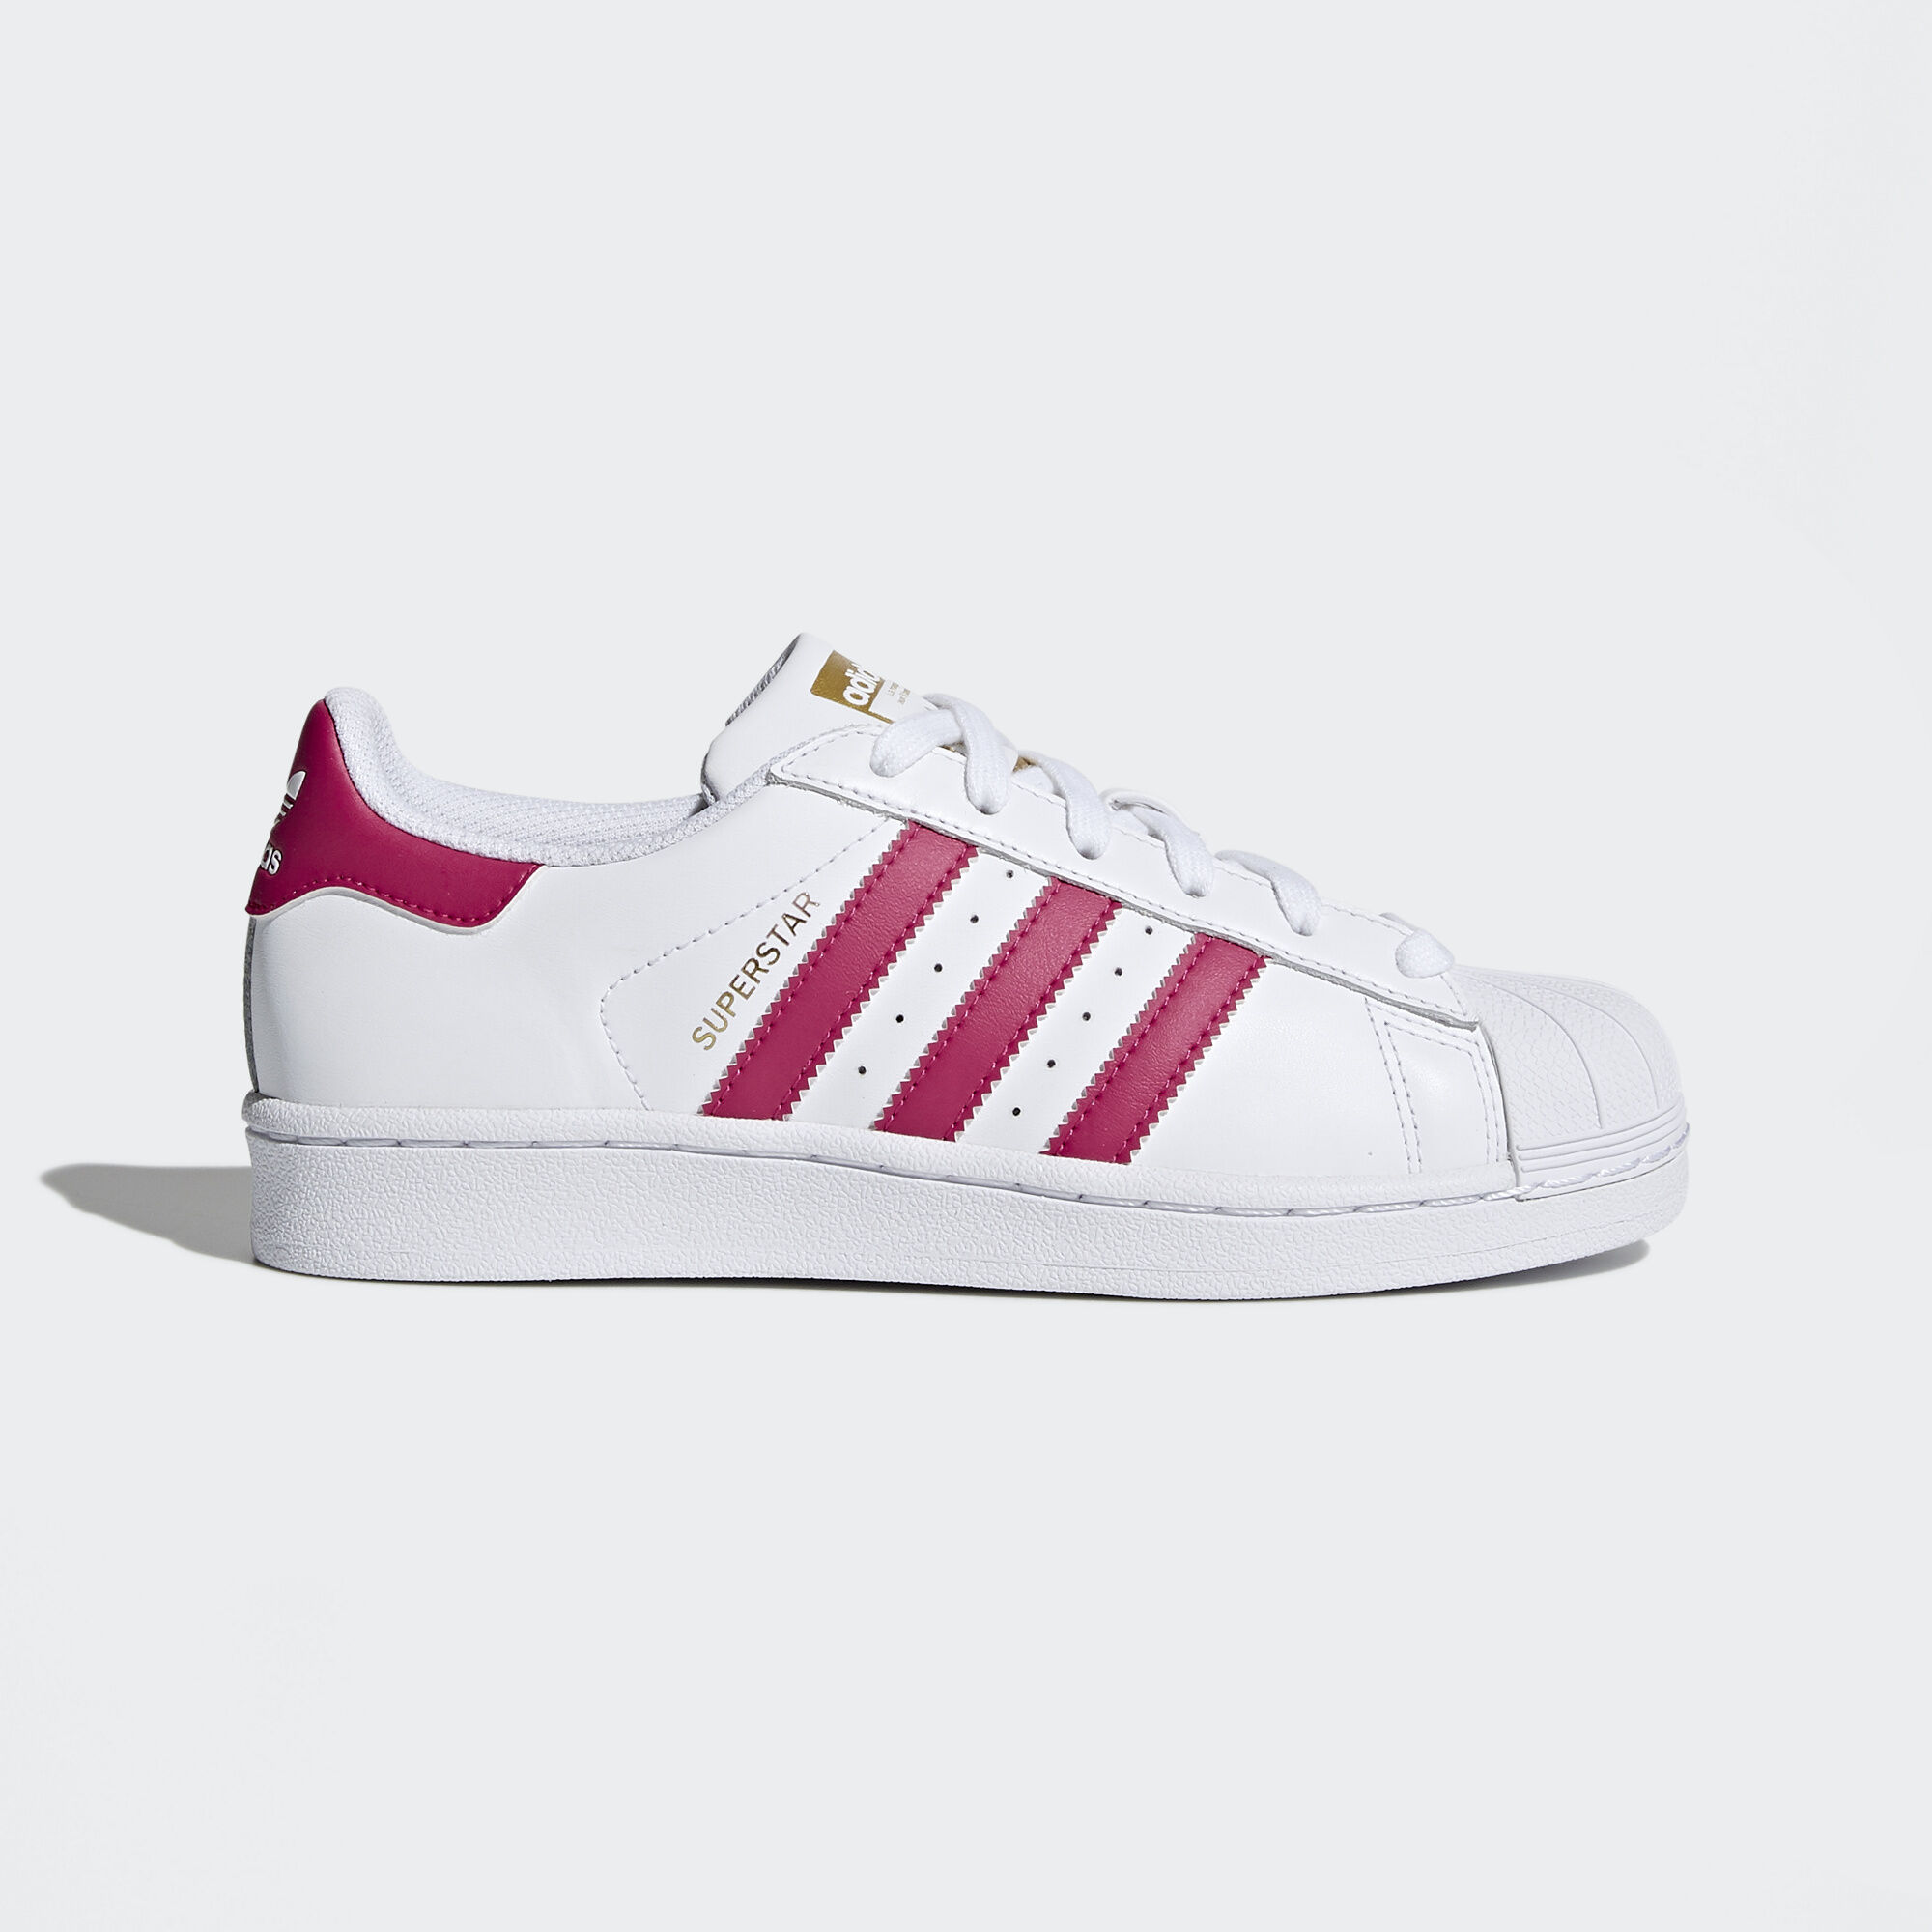 adidas superstar womens shoes size 6